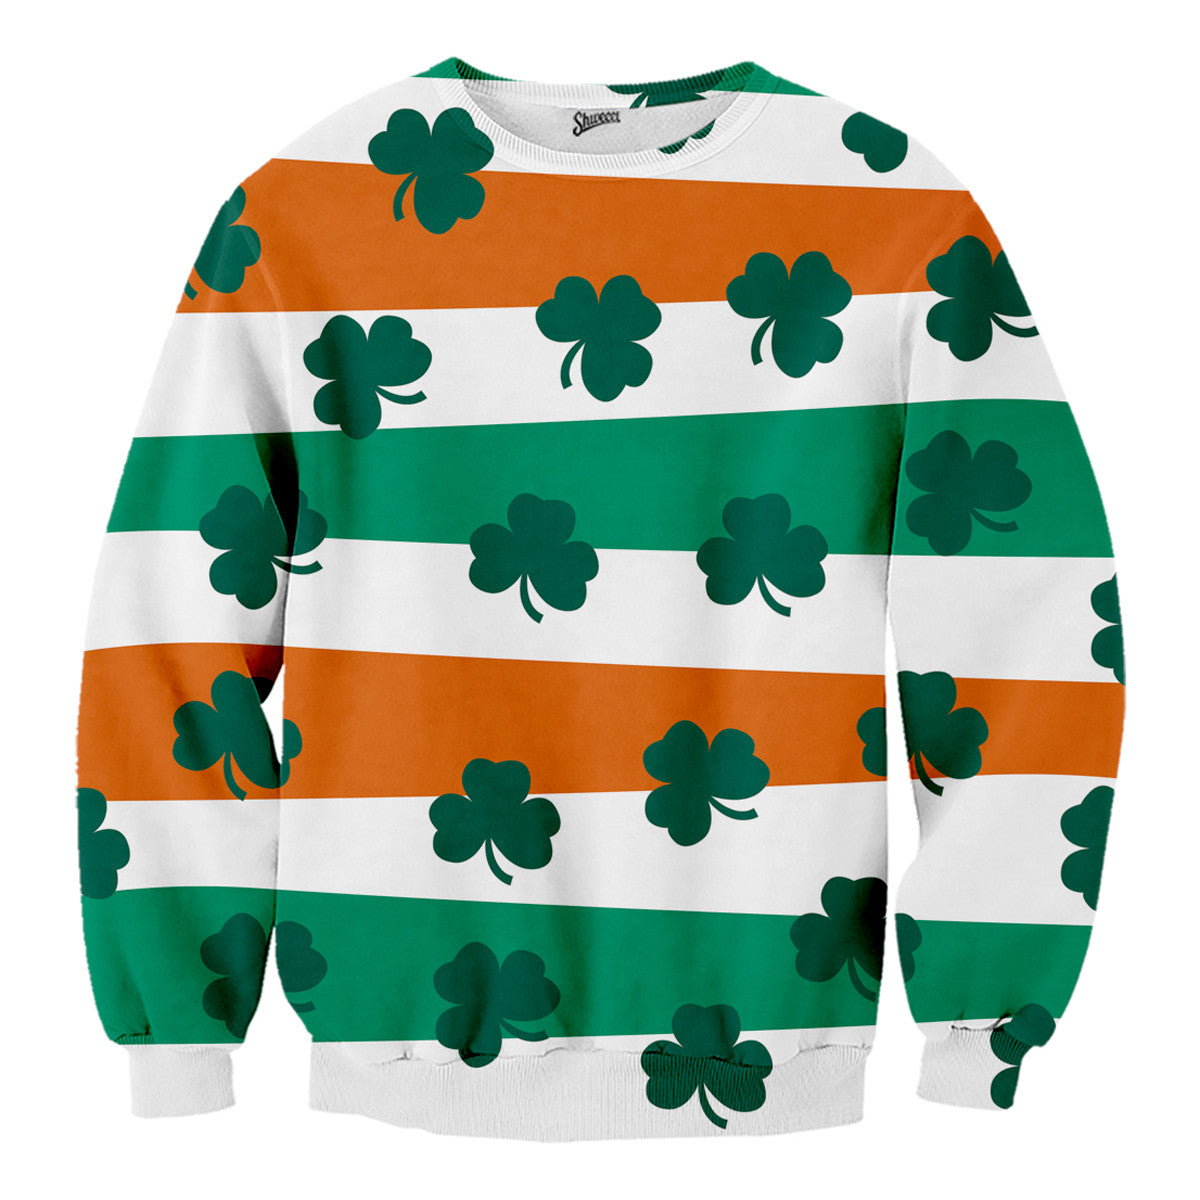 Irelands Flag n' Clover Crewneck Sweater